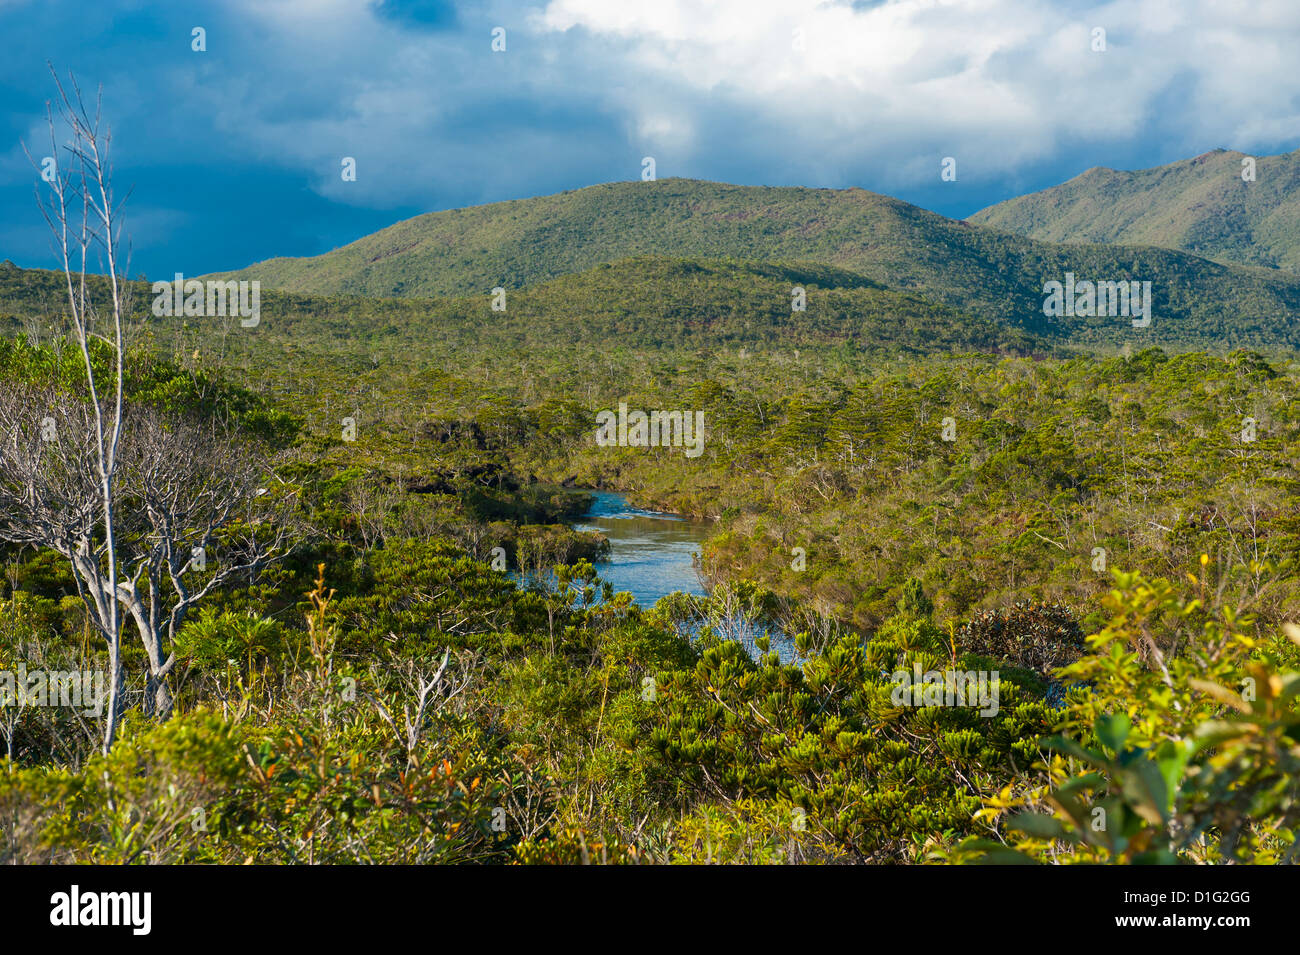 Landscape near the waterfalls Chutes de la Madeleine on the south coast of Grande Terre, New Caledonia, Melanesia, - Stock Image